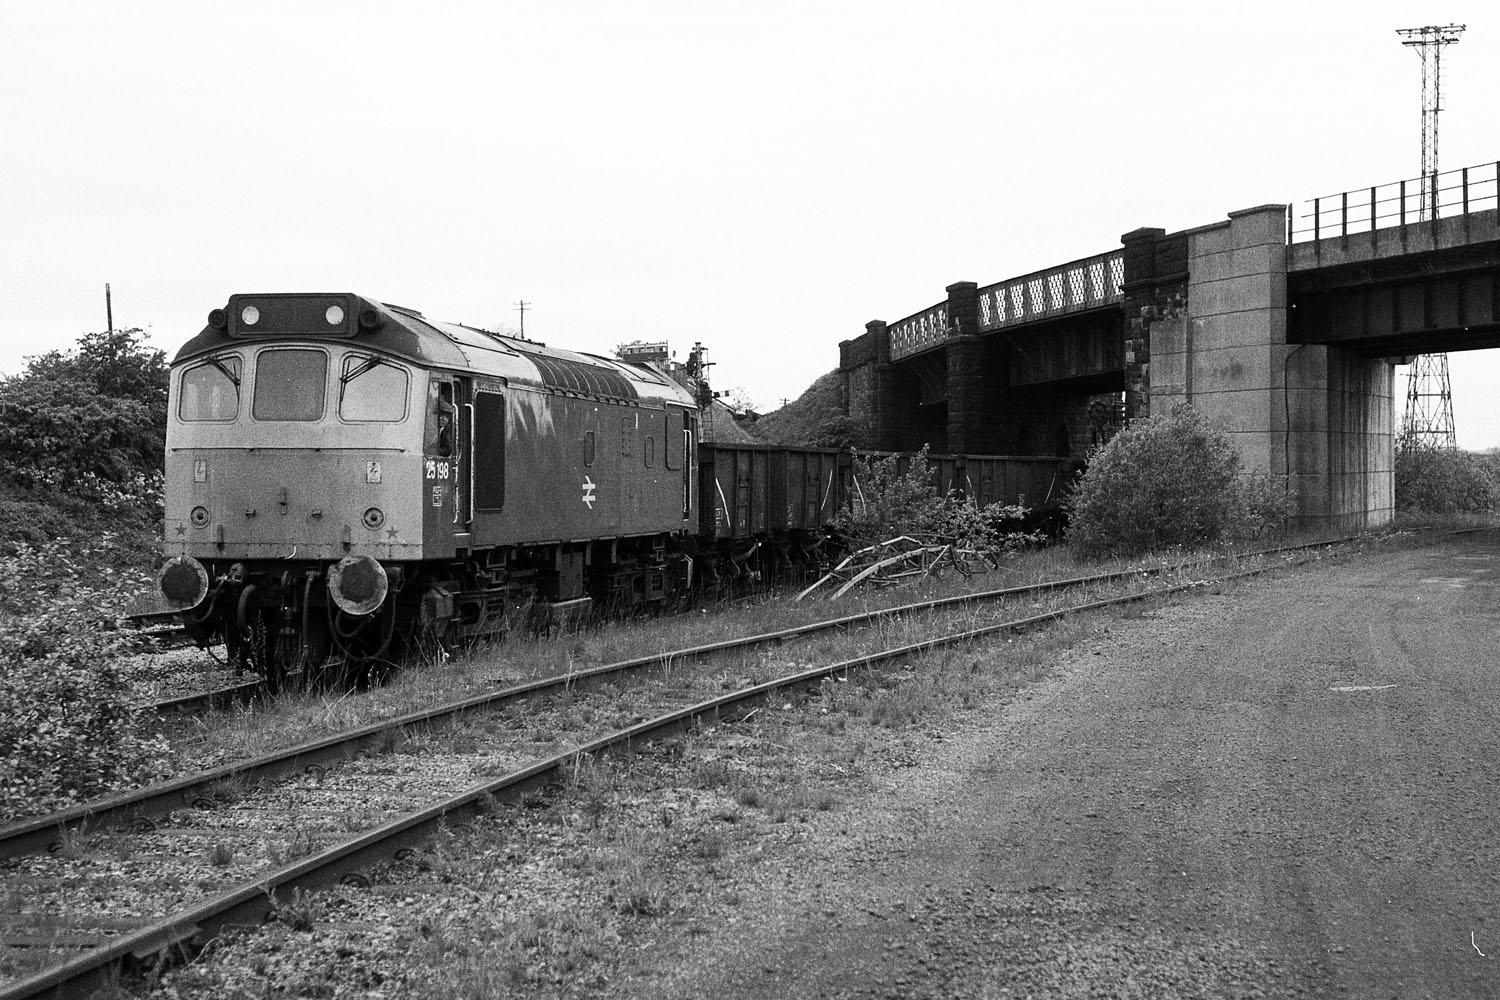 25 198 consett low yard with scrap wagons 26-5-82